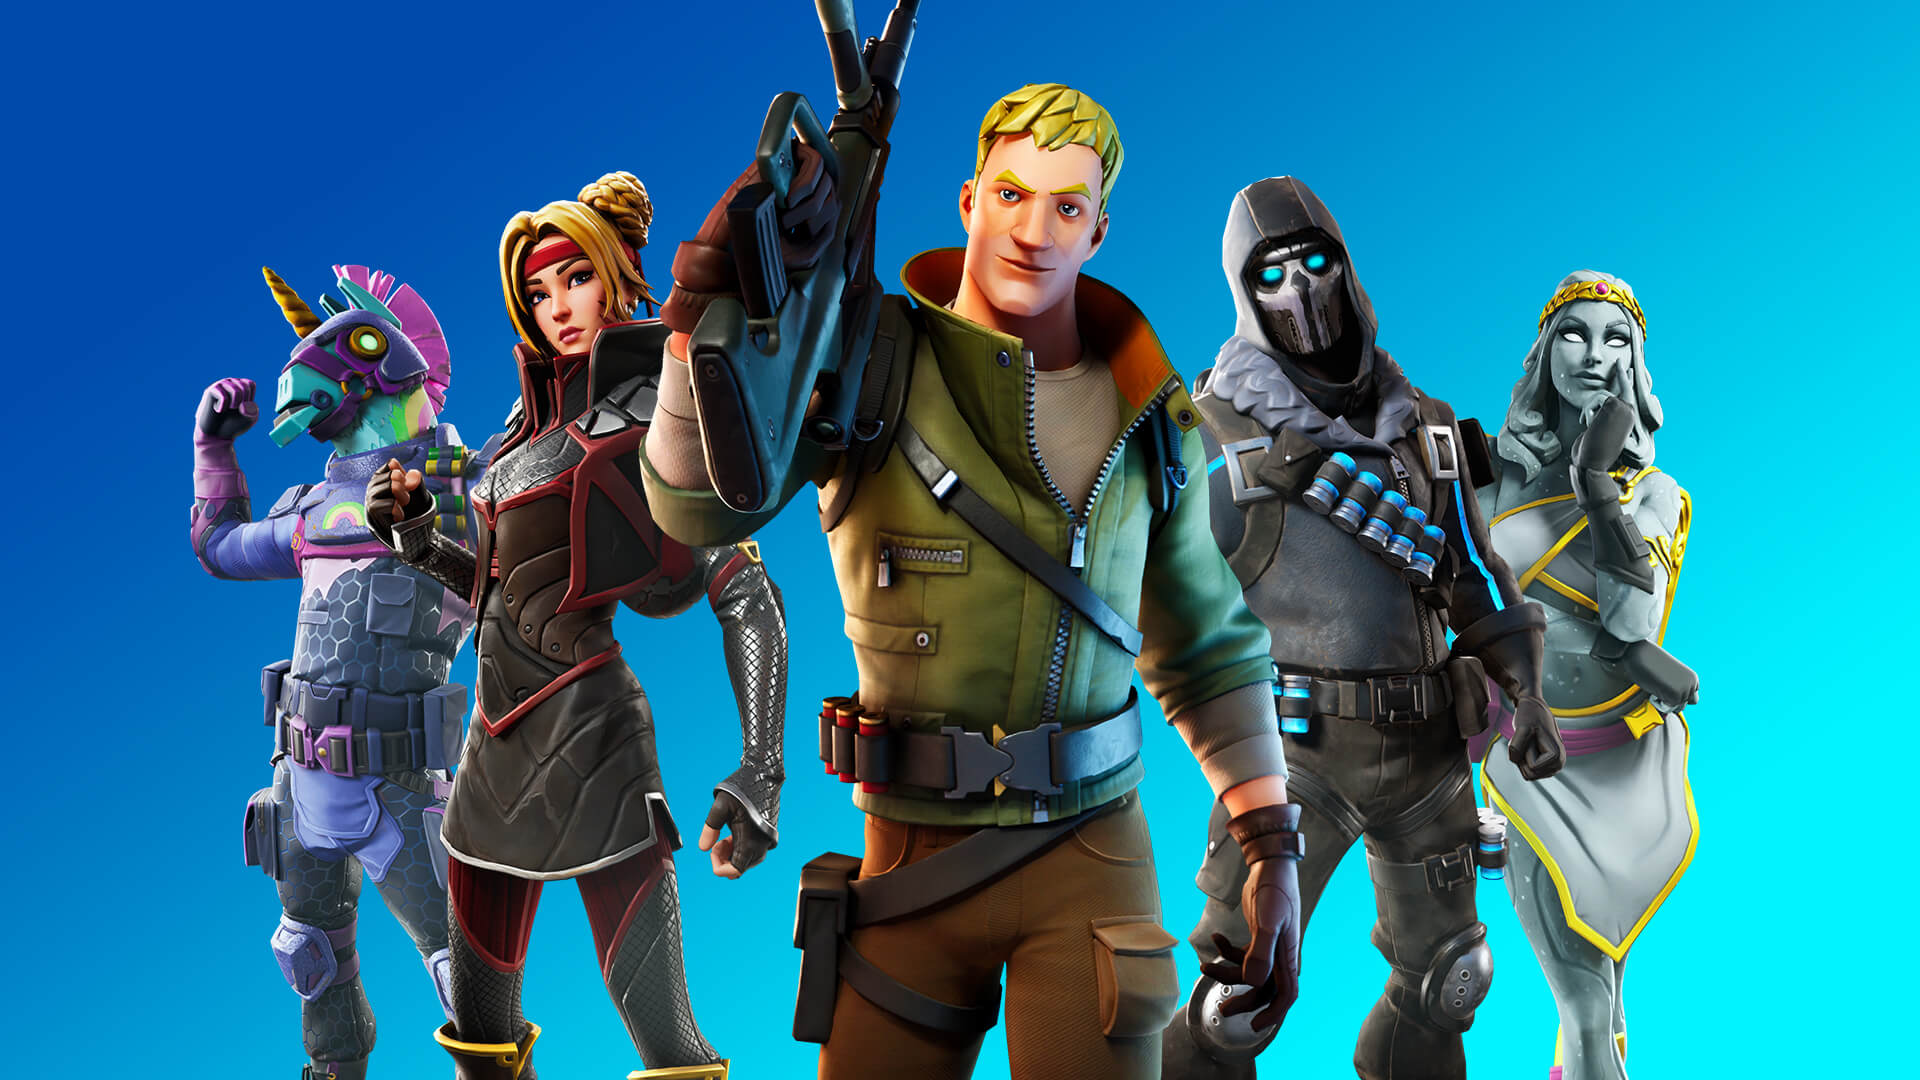 Fortnite Gets 'Astronomical' from Travis Scott - Webby Feed